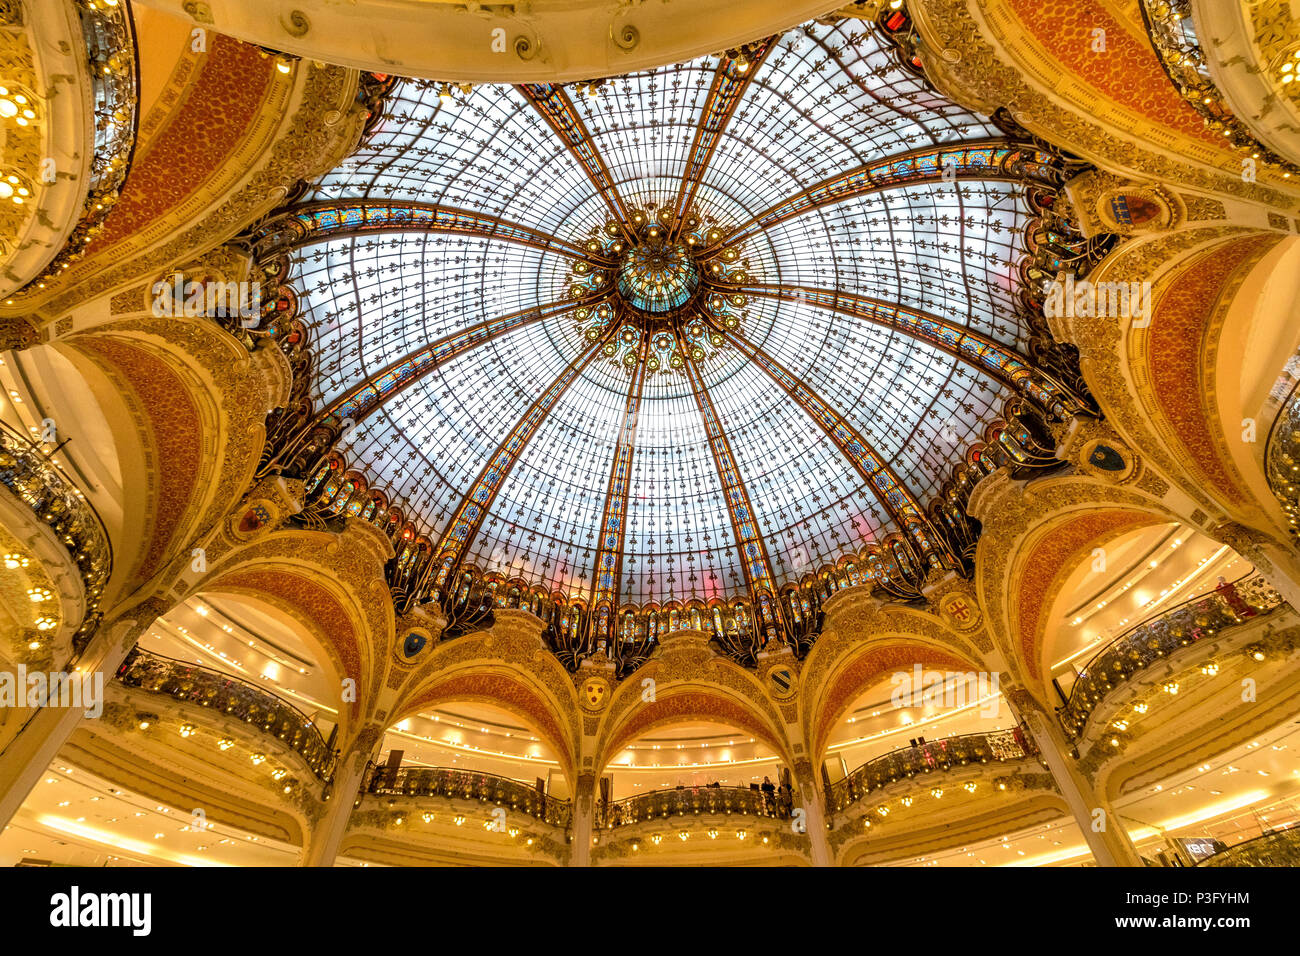 Interior of the flagship store Galeries Lafayette an upmarket French department store chain which is located on Boulevard Haussmann ,Paris - Stock Image